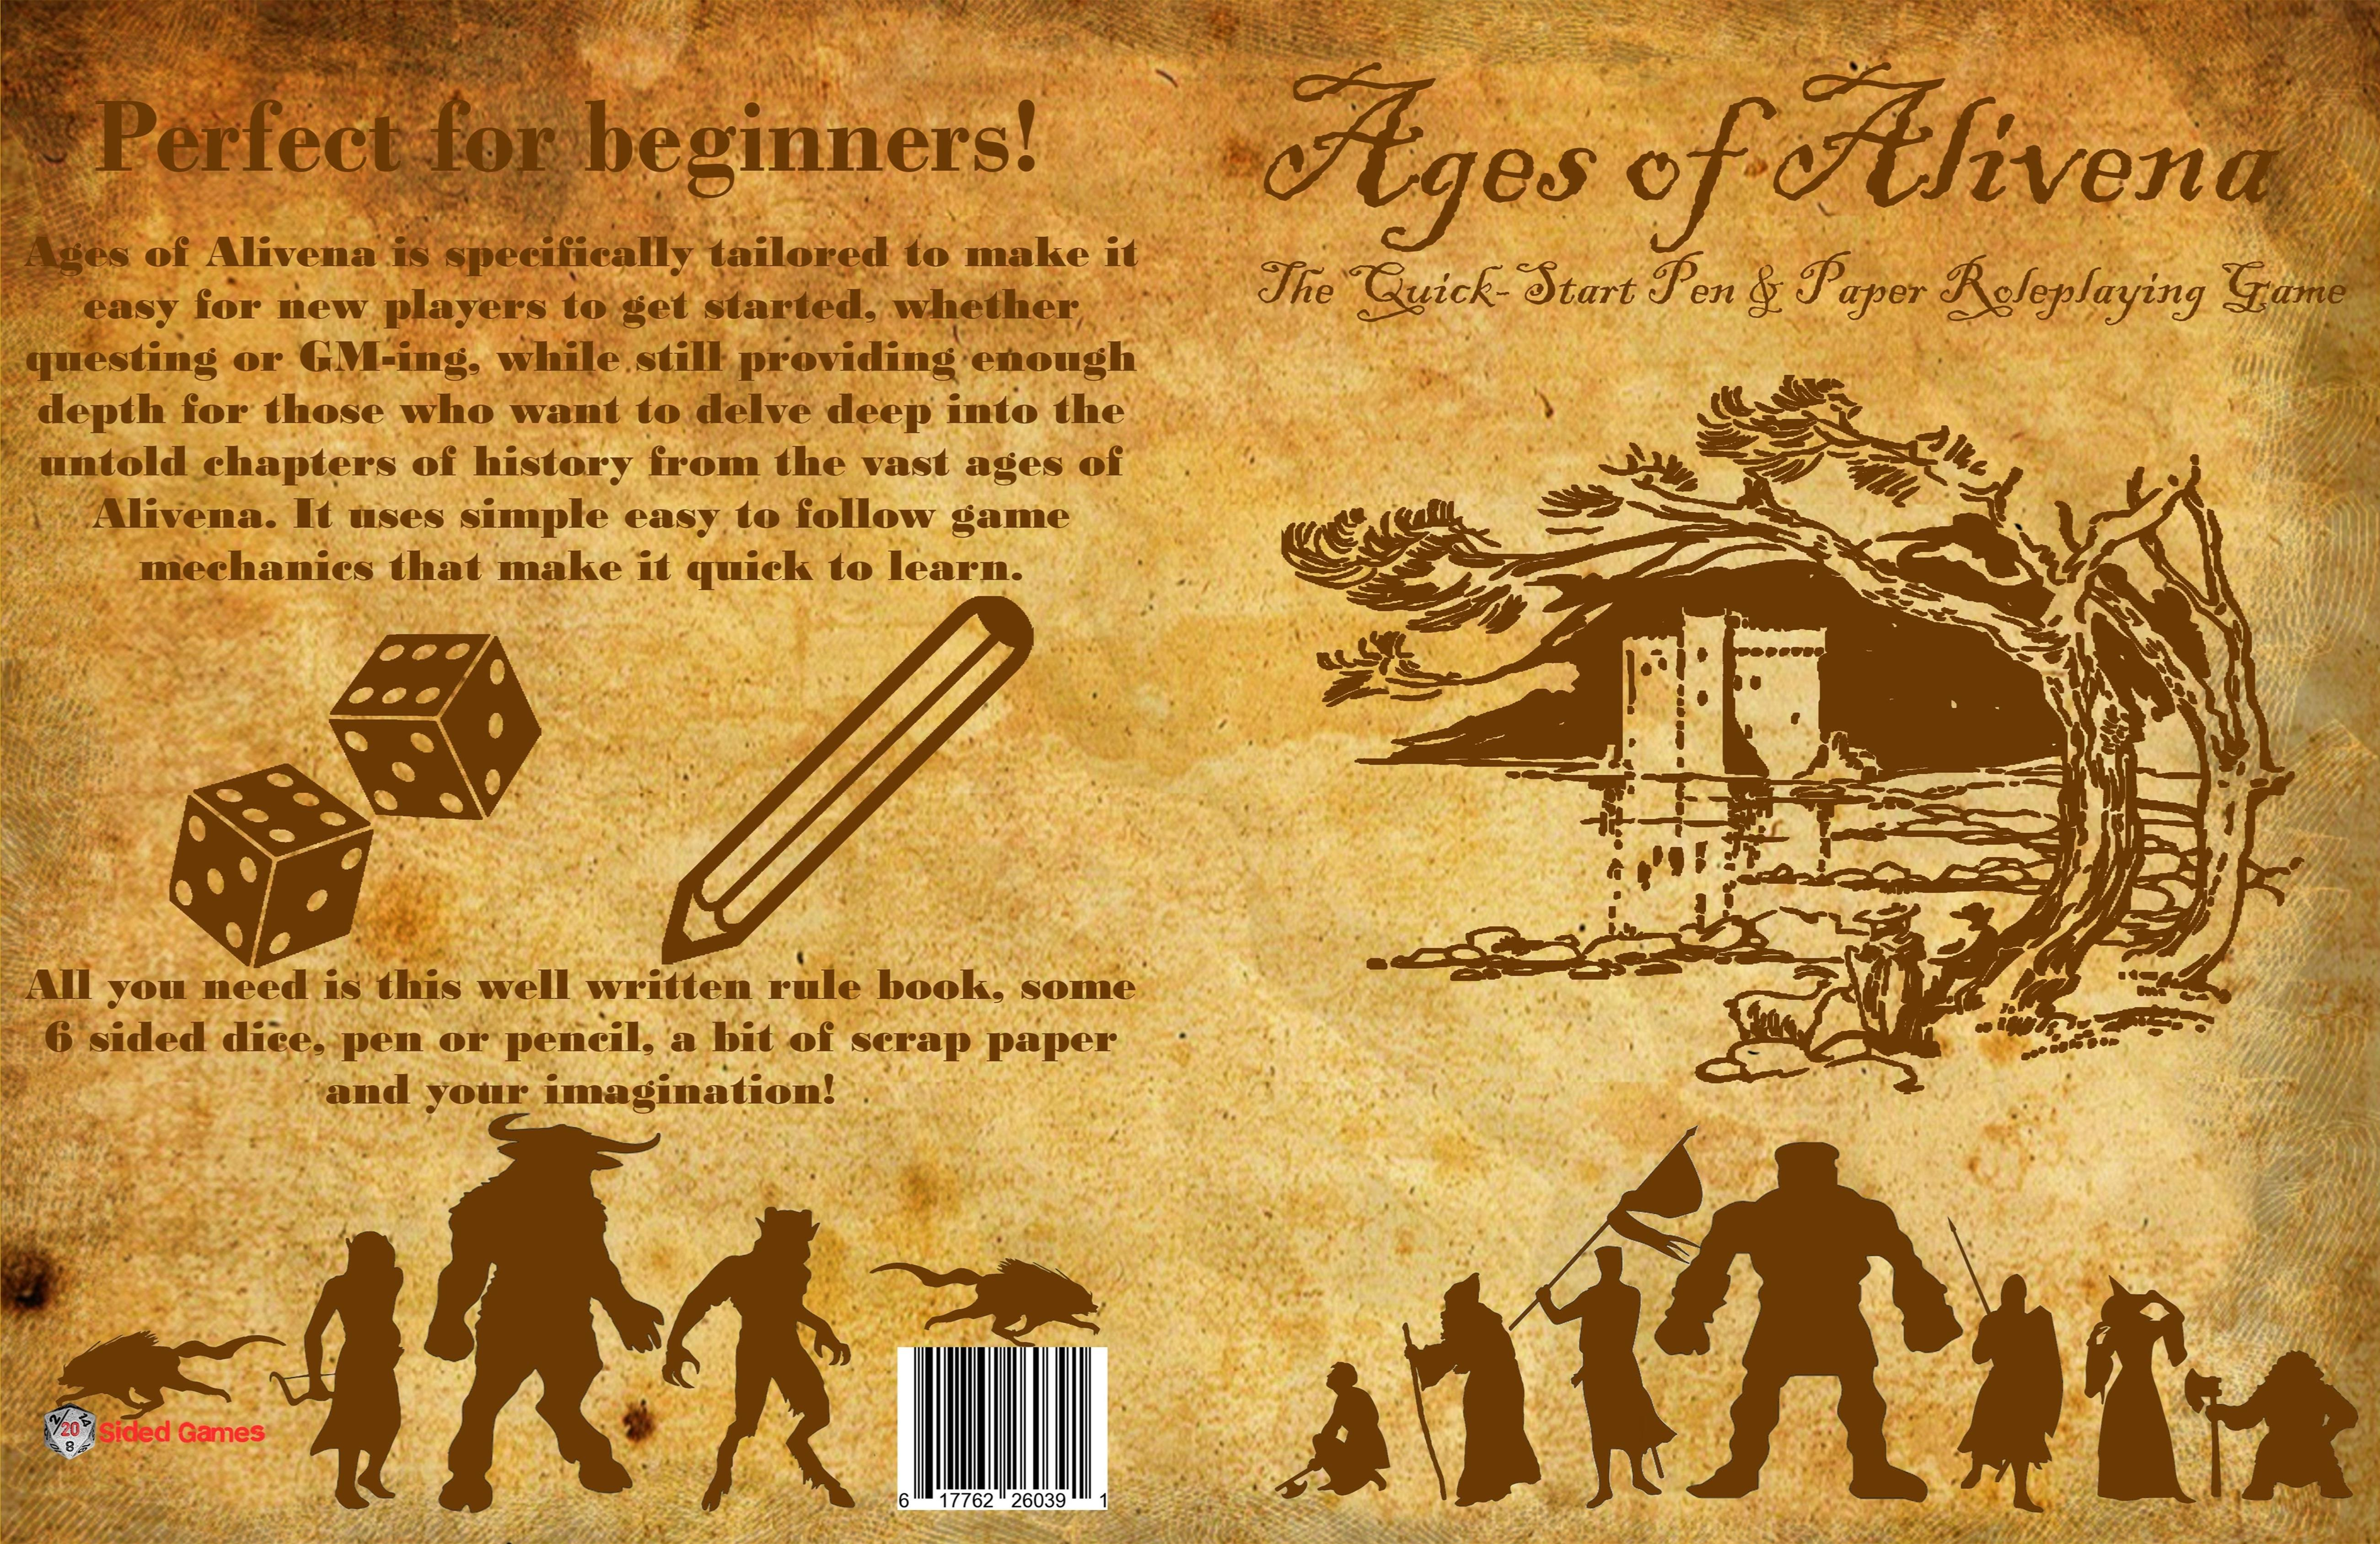 Ages of Alivena cover image